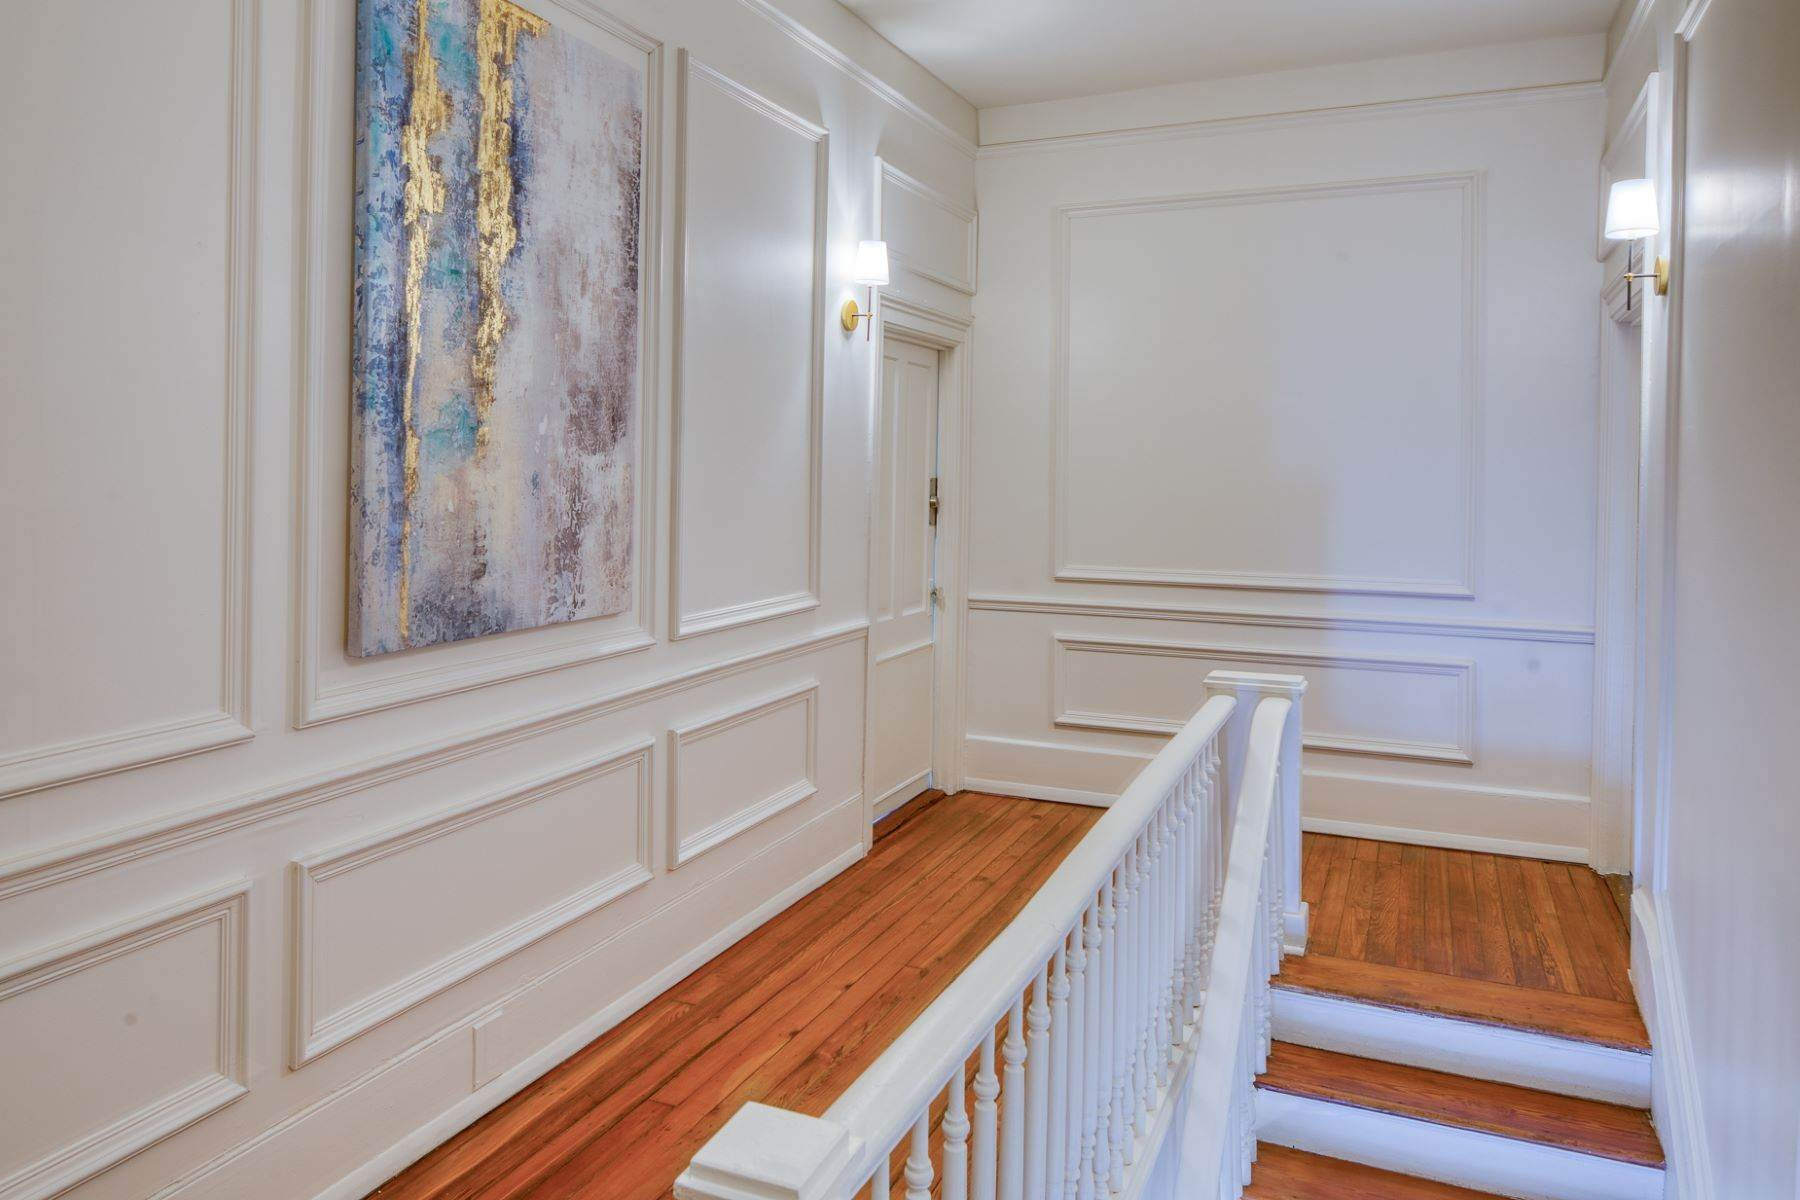 5. Property for Sale at Stunning Six Unit Victorian Apartment Building Near Forsyth Park 109 E Duffy Street Savannah, Georgia 31401 United States